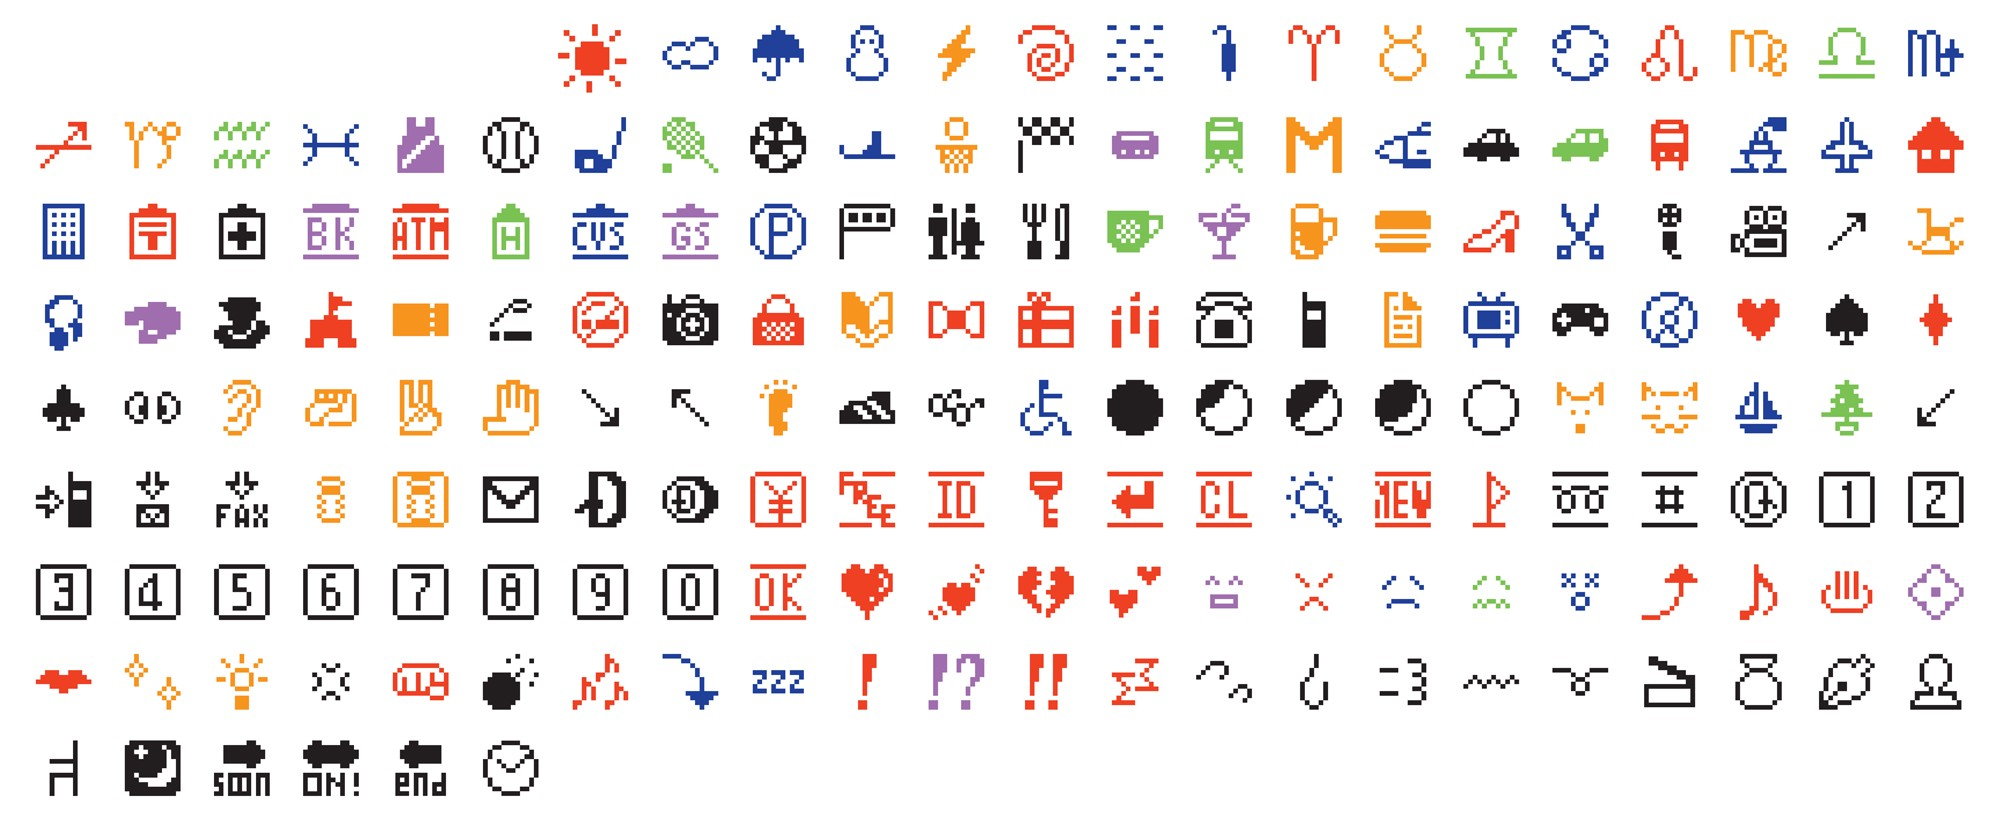 Original emoji set added to MoMA collection